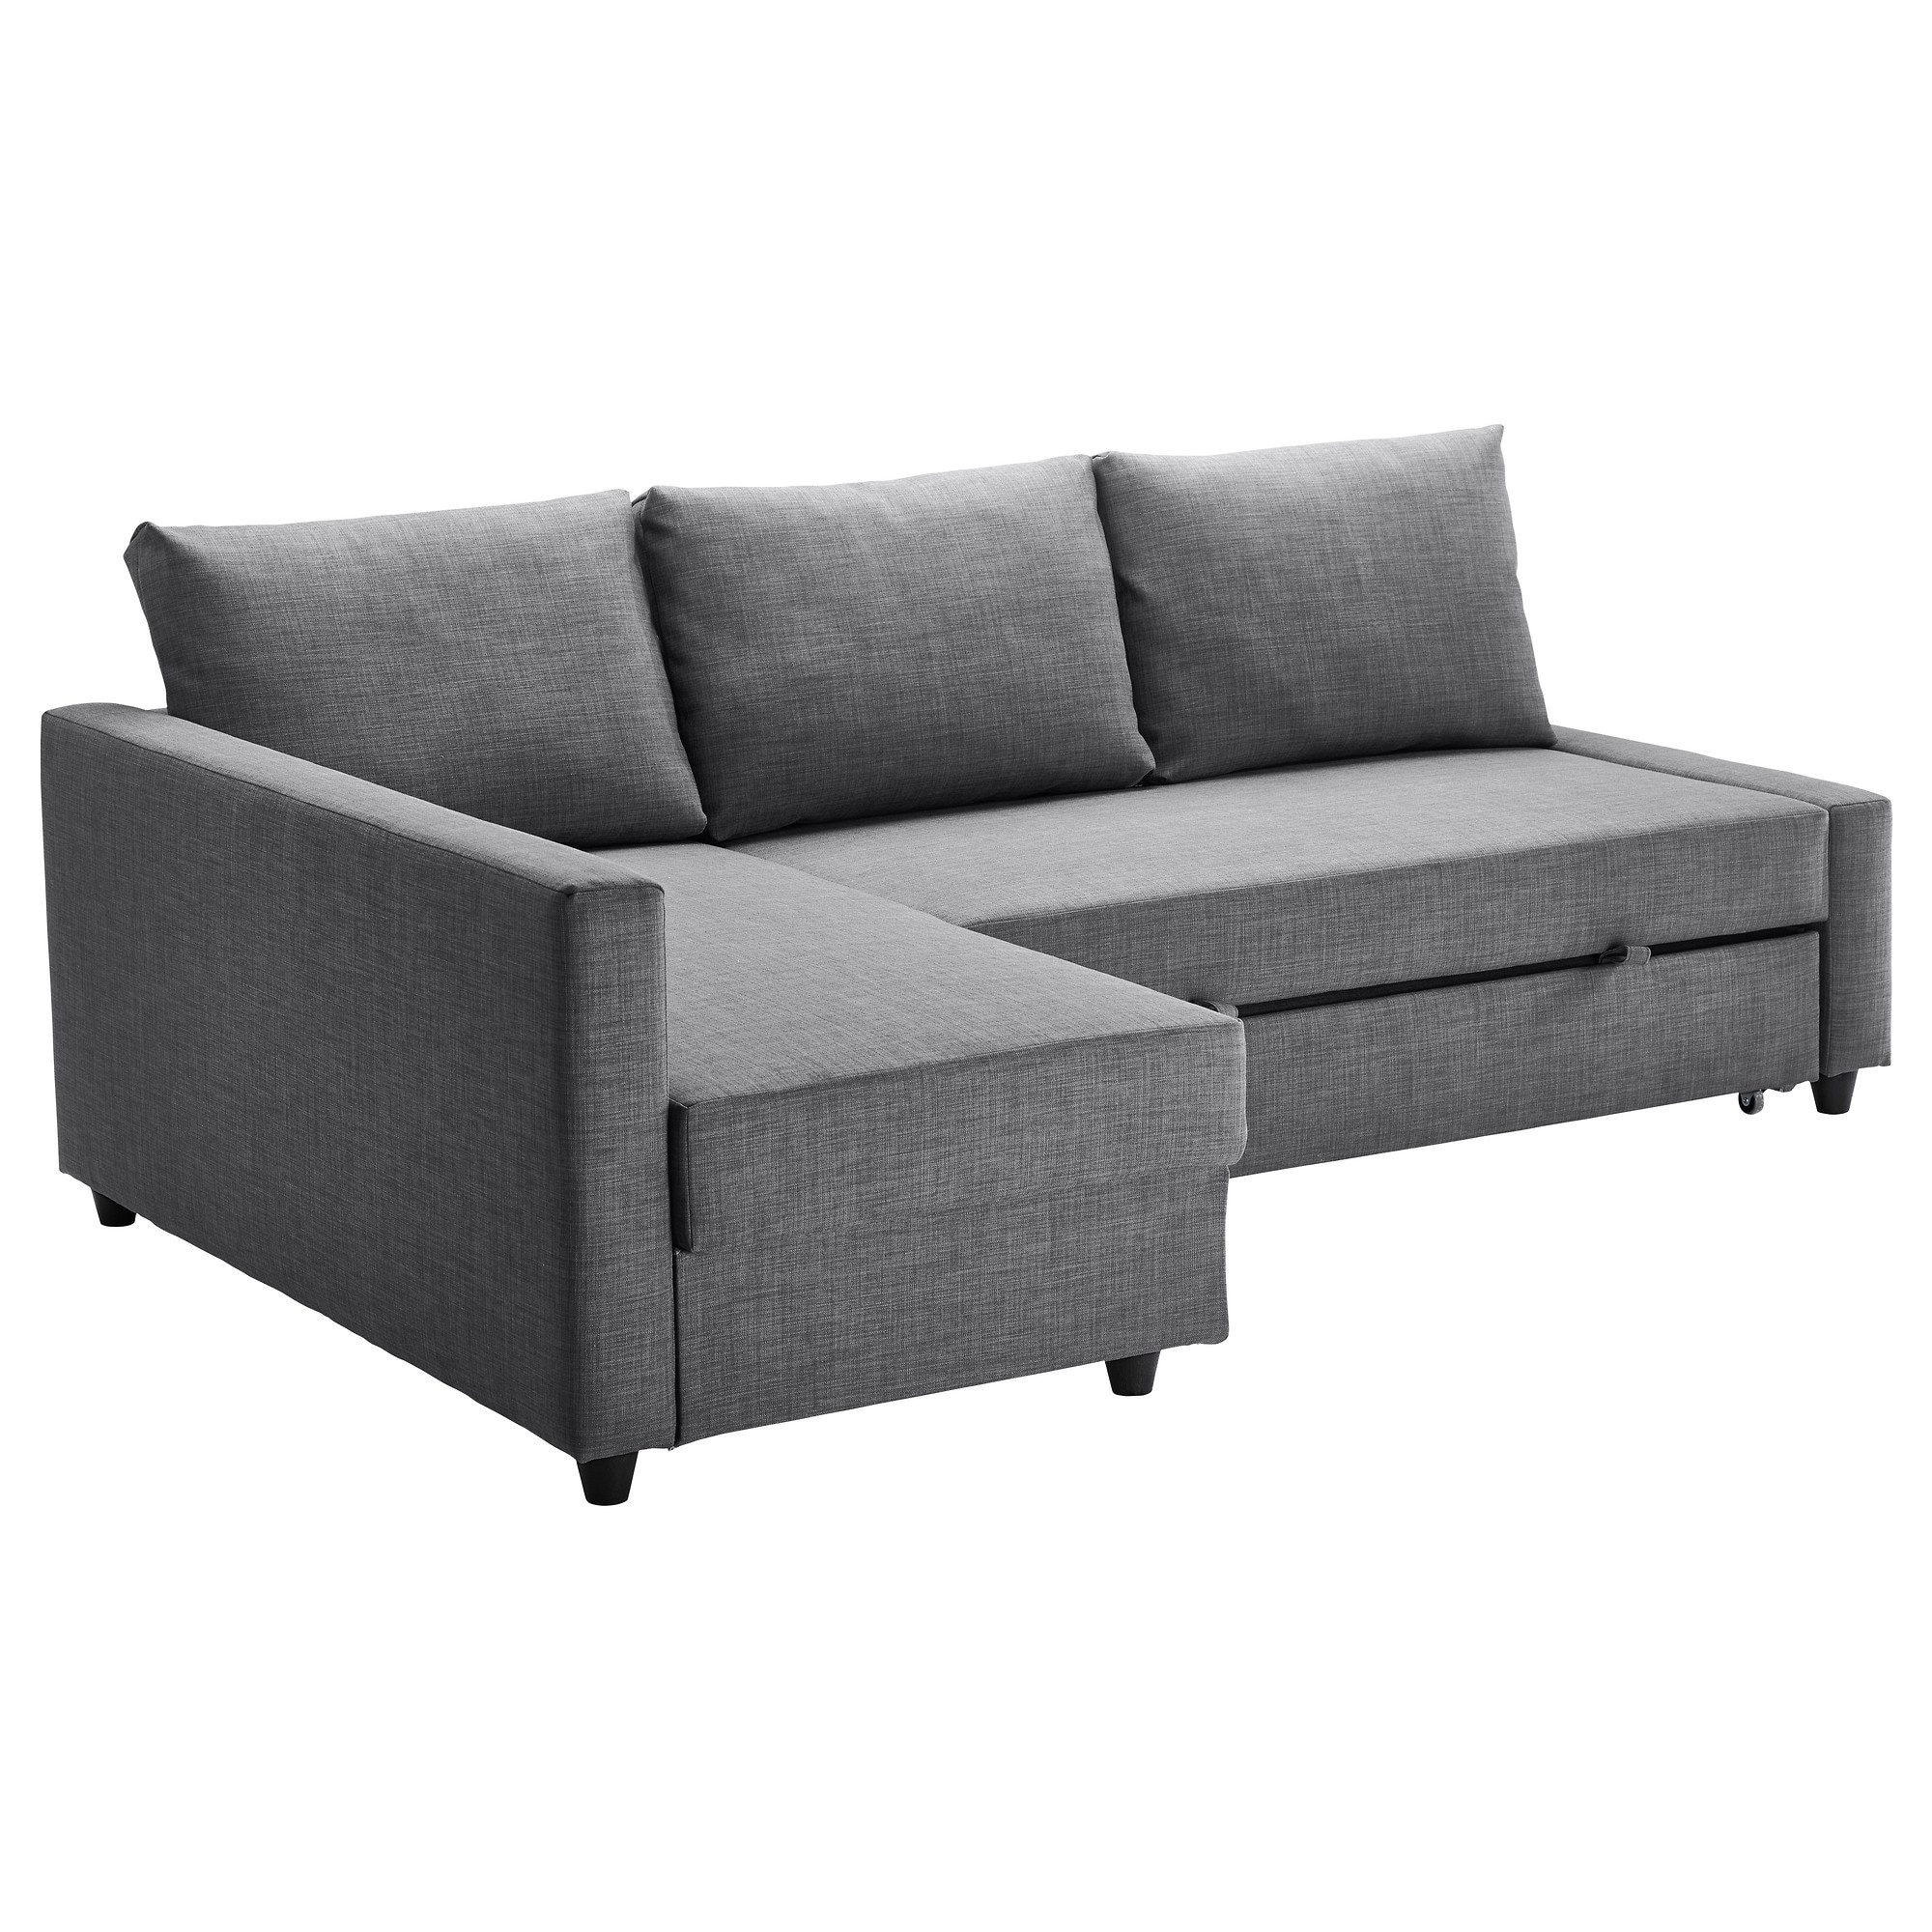 Taren Reversible Sofa/chaise Sleeper Sectionals With Storage Ottoman With Regard To Current Best Of Sleeper Chaise Sofa – Buildsimplehome (View 12 of 20)